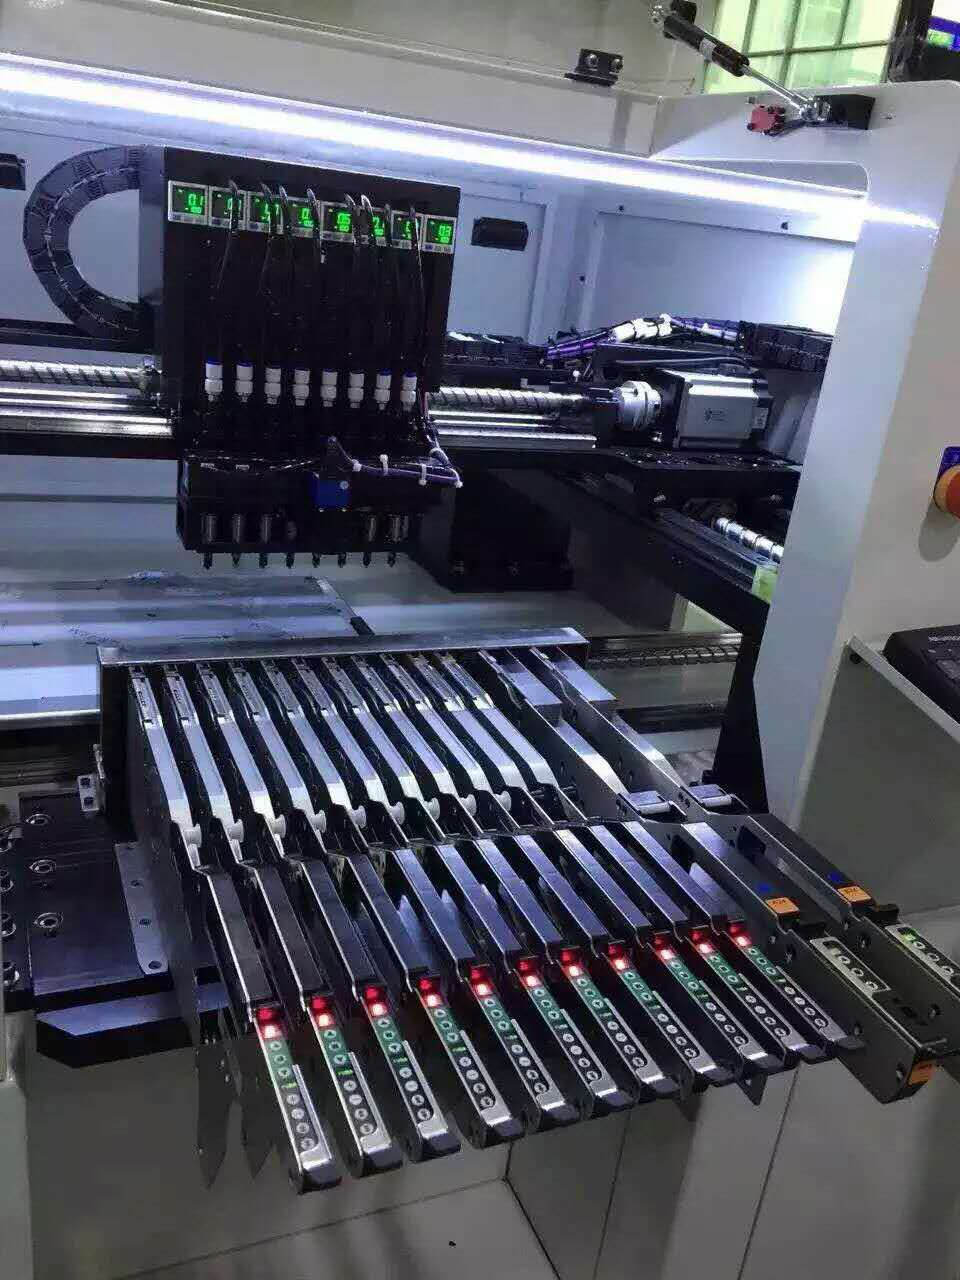 AI spare parts、Universal Parts,UIC,TDK.VCD Sequencer.SMT,THT,PCB,PCBA,AI,wave soldering,reflow oven,nozzle,feeder,wave soldering,PCB Assembly, LED, LED lamp, LED display,